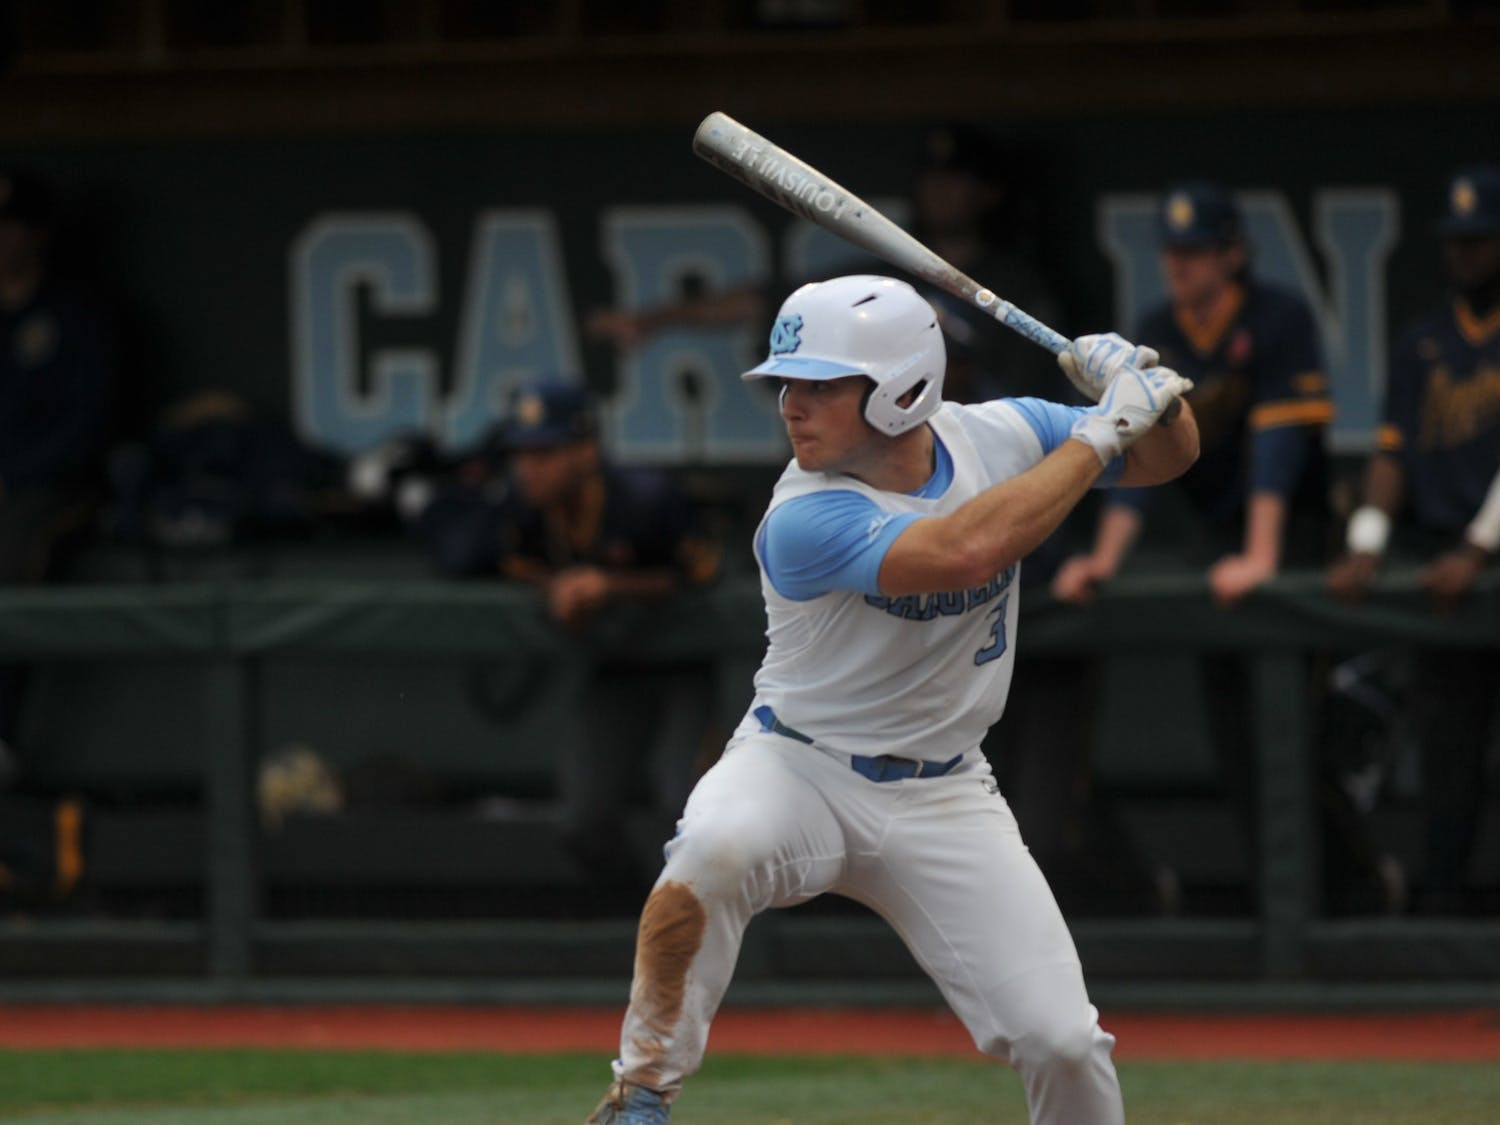 UNC senior Dylan Harris (3) at bat on Tuesday, Feb. 25, 2020 in Boshamer Stadium against NC A&T. UNC beat NC A&T 8-0.